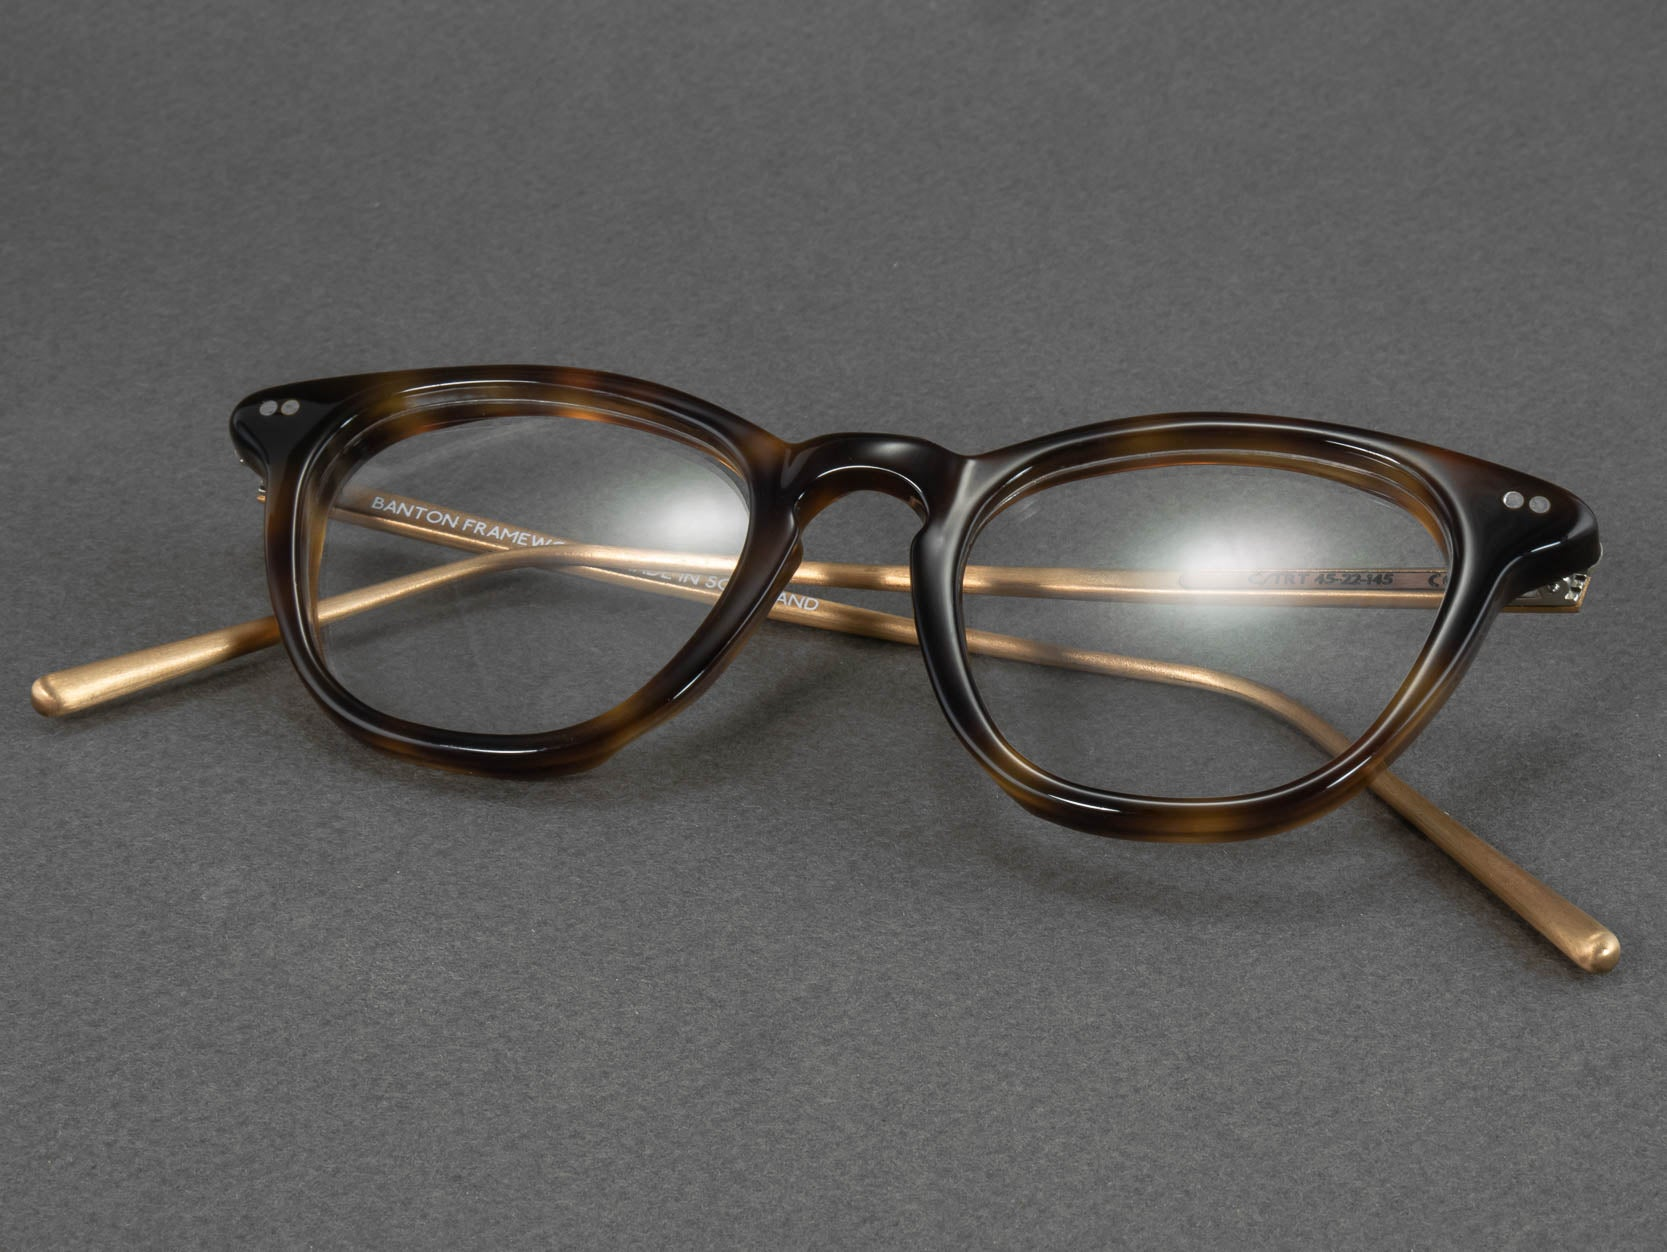 tortoise shell glasses folded